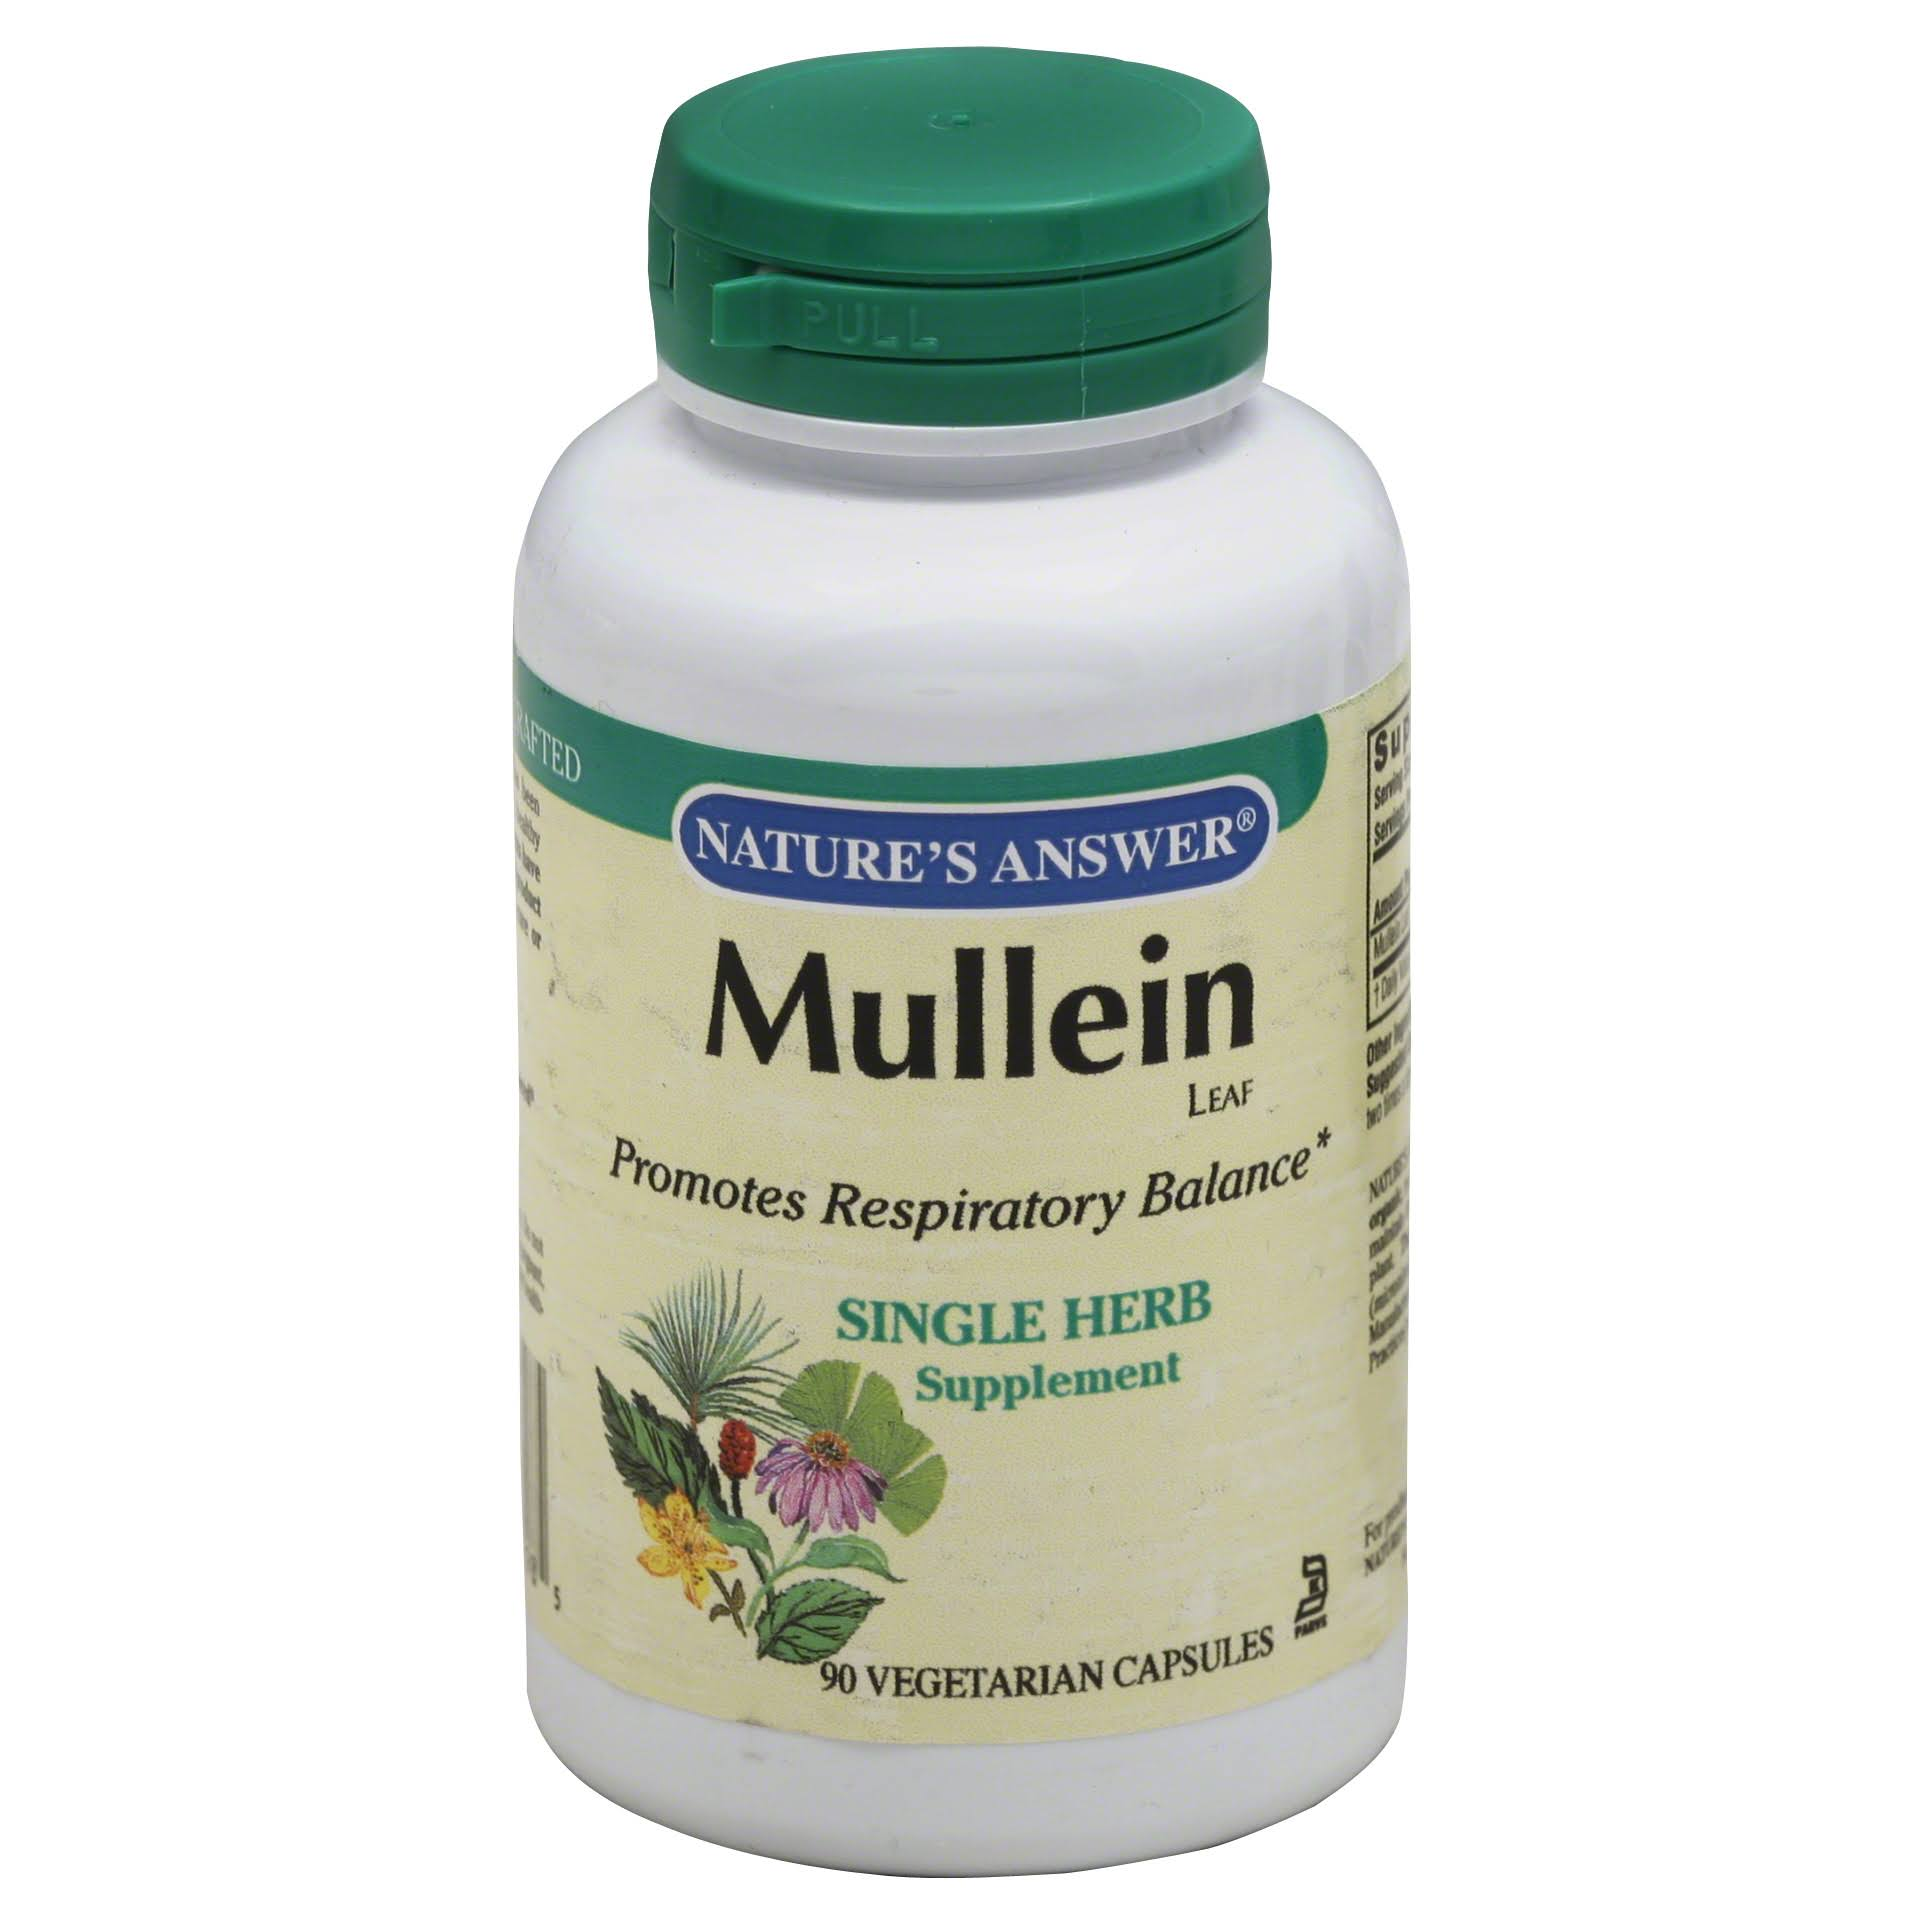 Nature's Answer Mullein Leaf Supplement - 90 Vegetarian Capsules